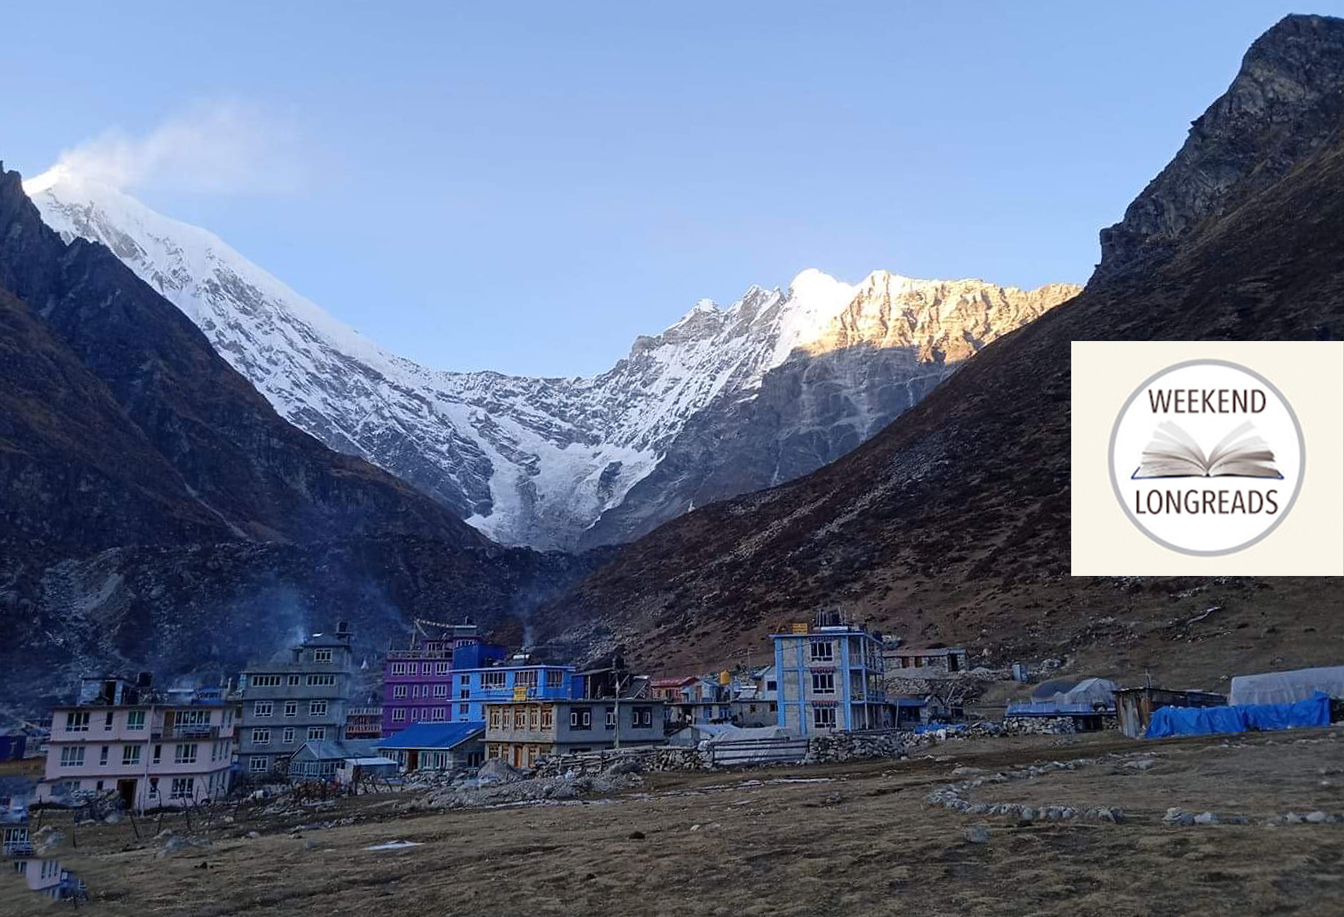 The story of Langtang cheese